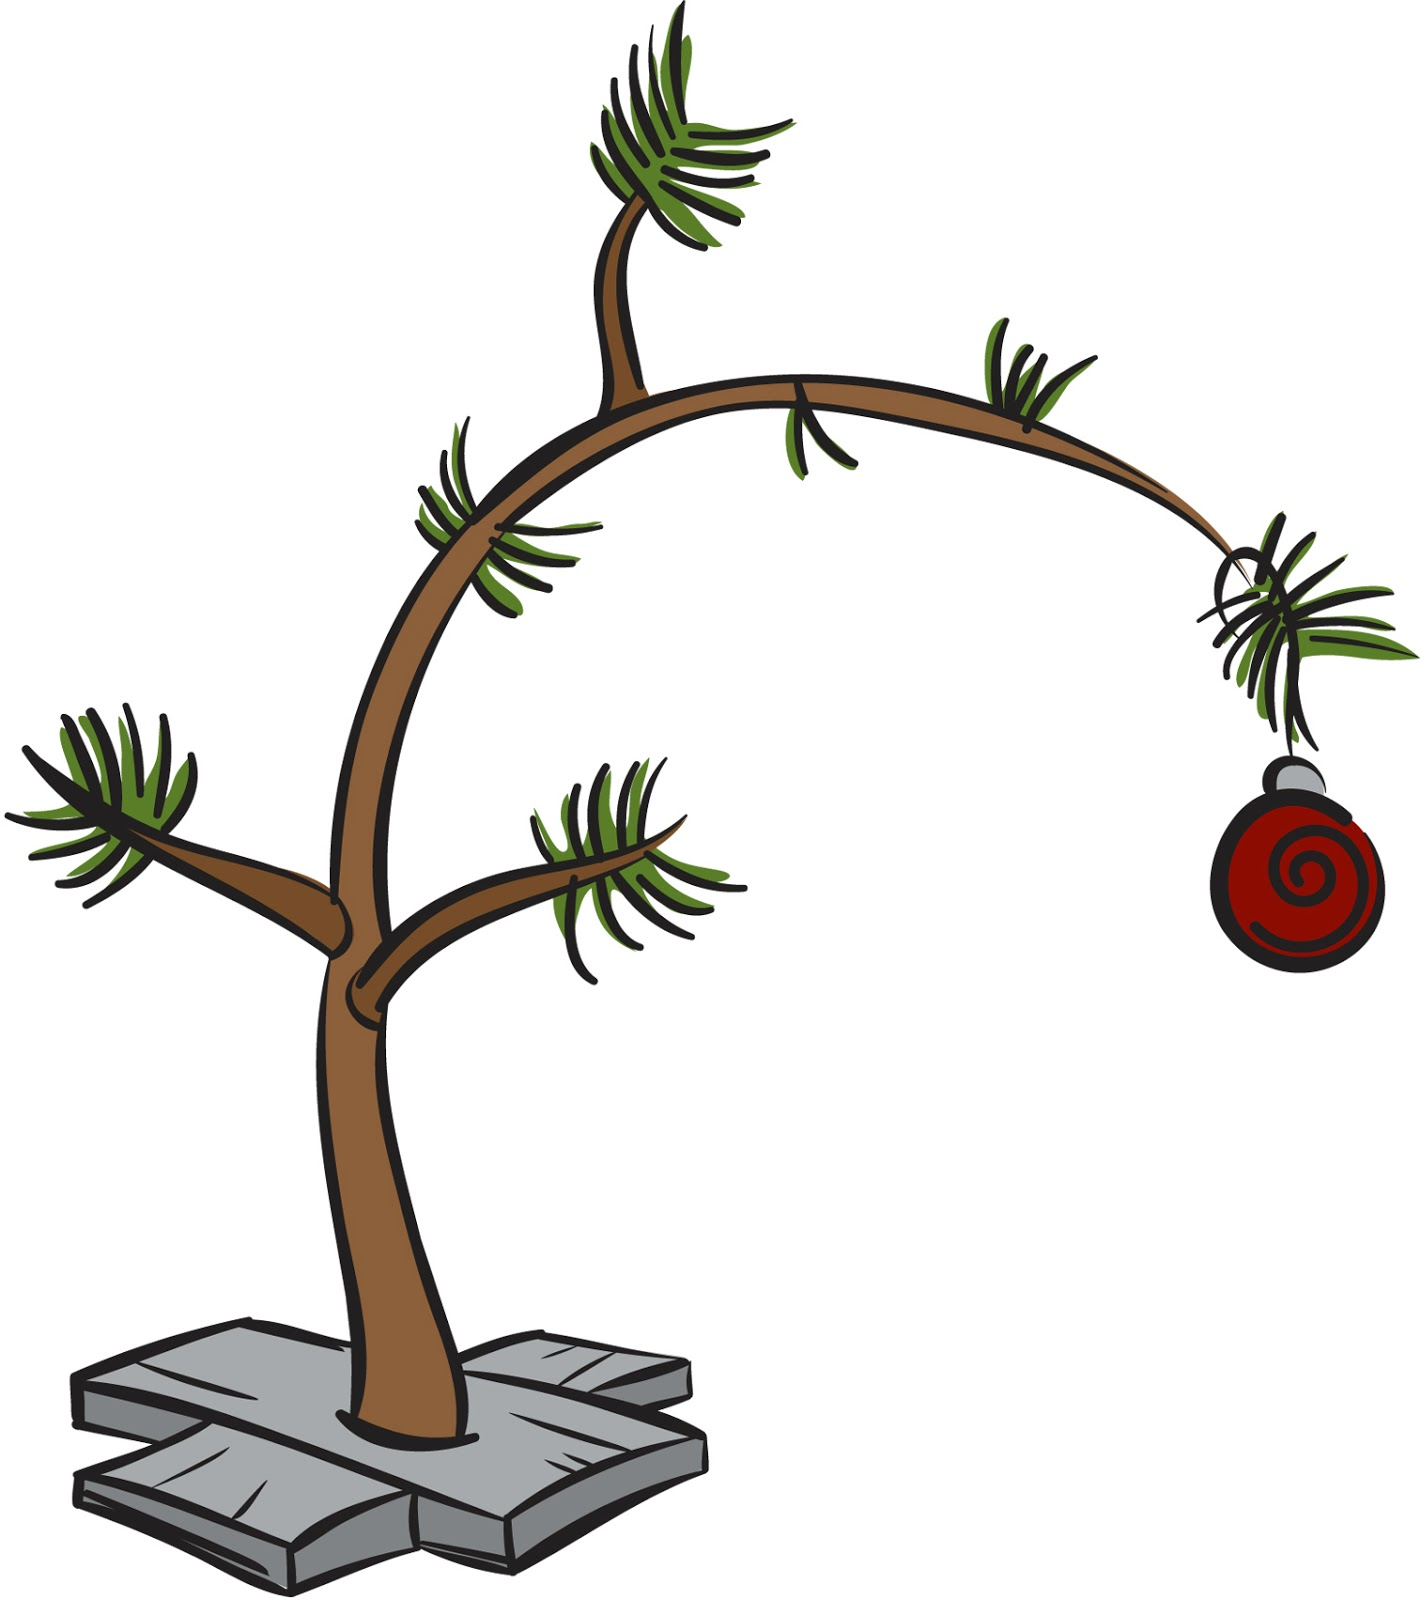 Charlie brown tree clipart 8 » Clipart Station.